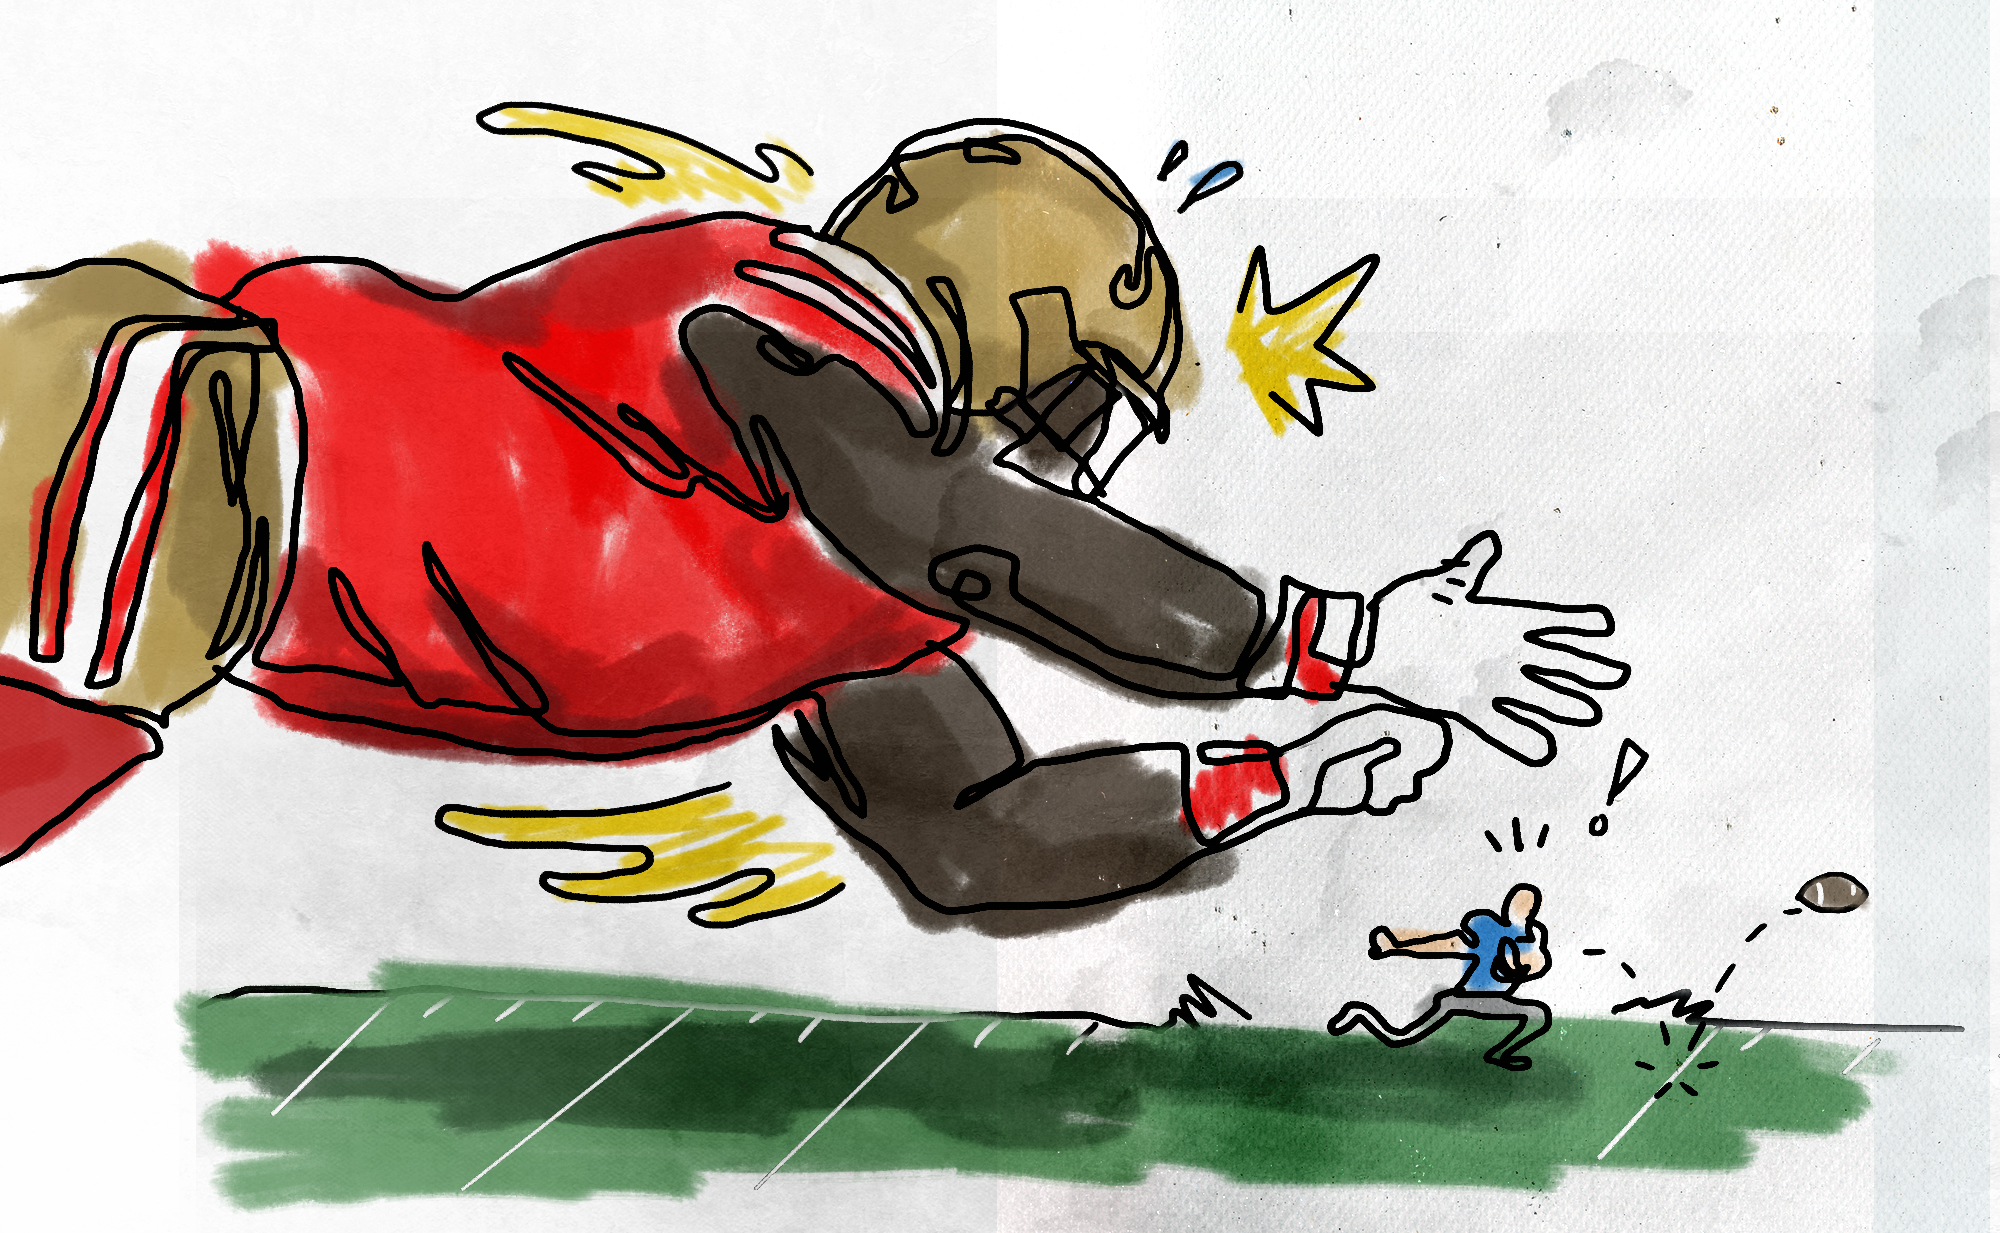 A cartoon illustration of a large football player diving toward a much smaller player while the football pops loose